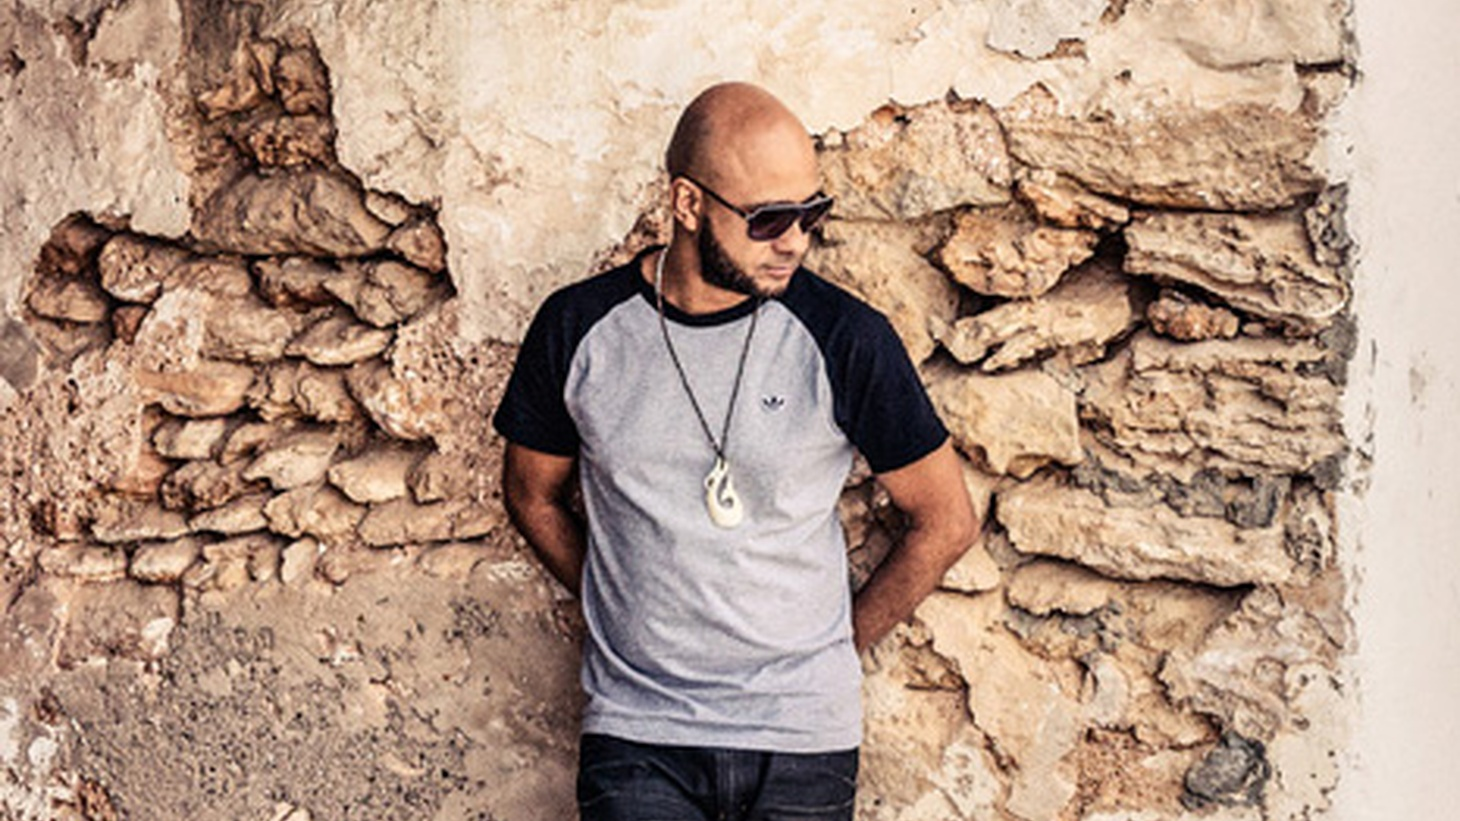 To celebrate a 25 year career still in progress, George Evelyn aka Nightmares on Wax released a double CD featuring deep cuts and highlights of his work.